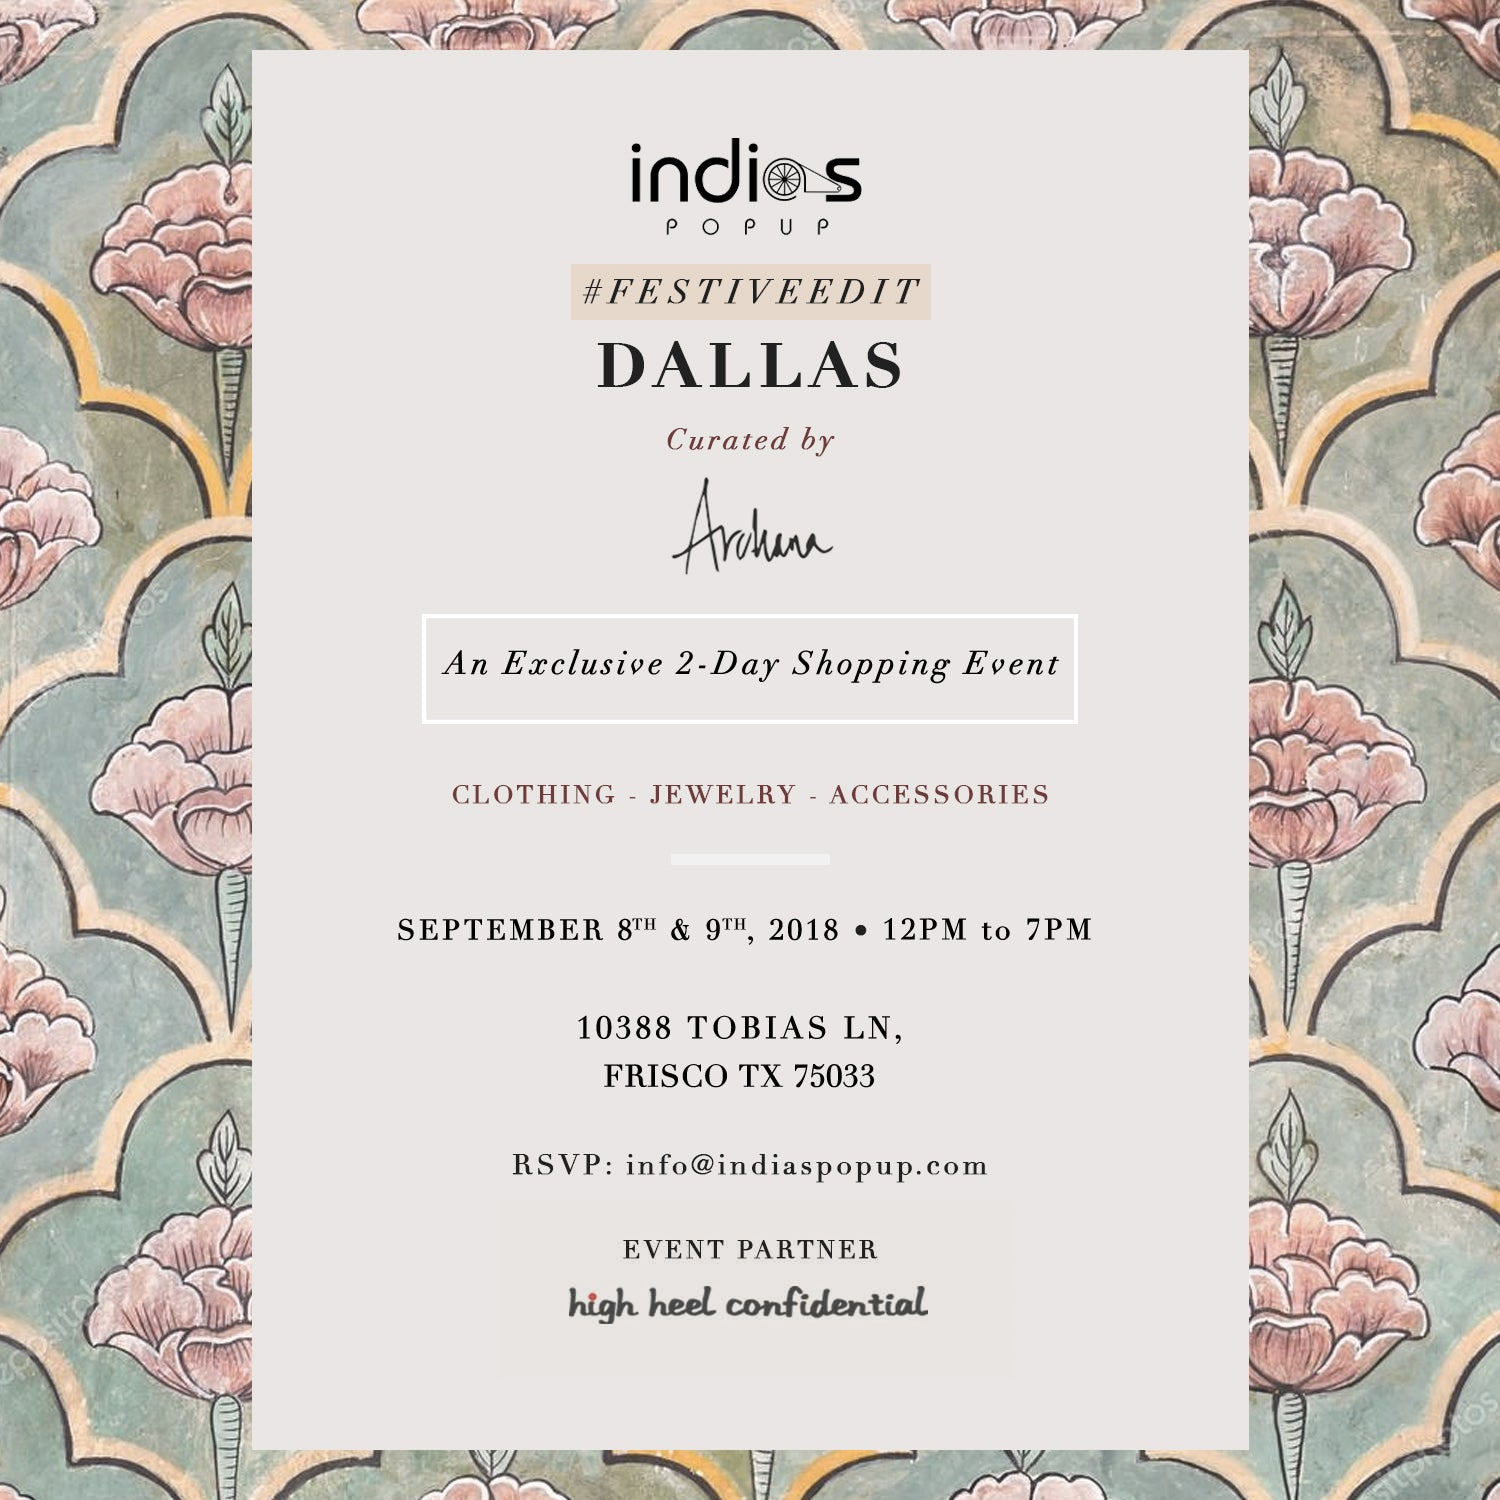 Archana Yenna Presents Indian Luxury Festive Edit 2018 Dallas